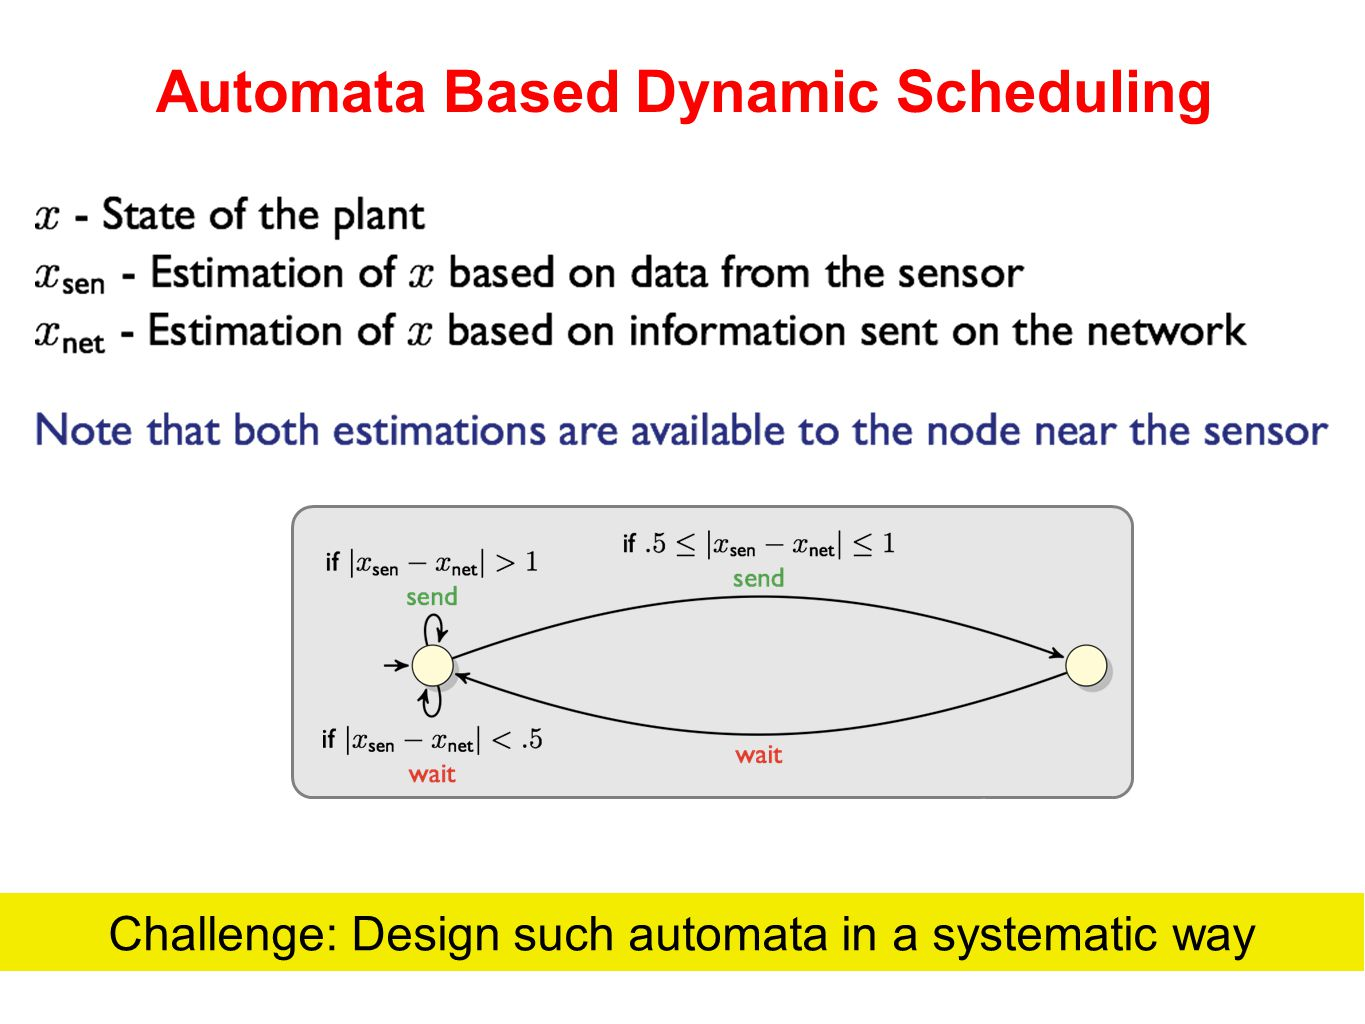 Automata Based Dynamic Scheduling Challenge: Design such automata in a systematic way